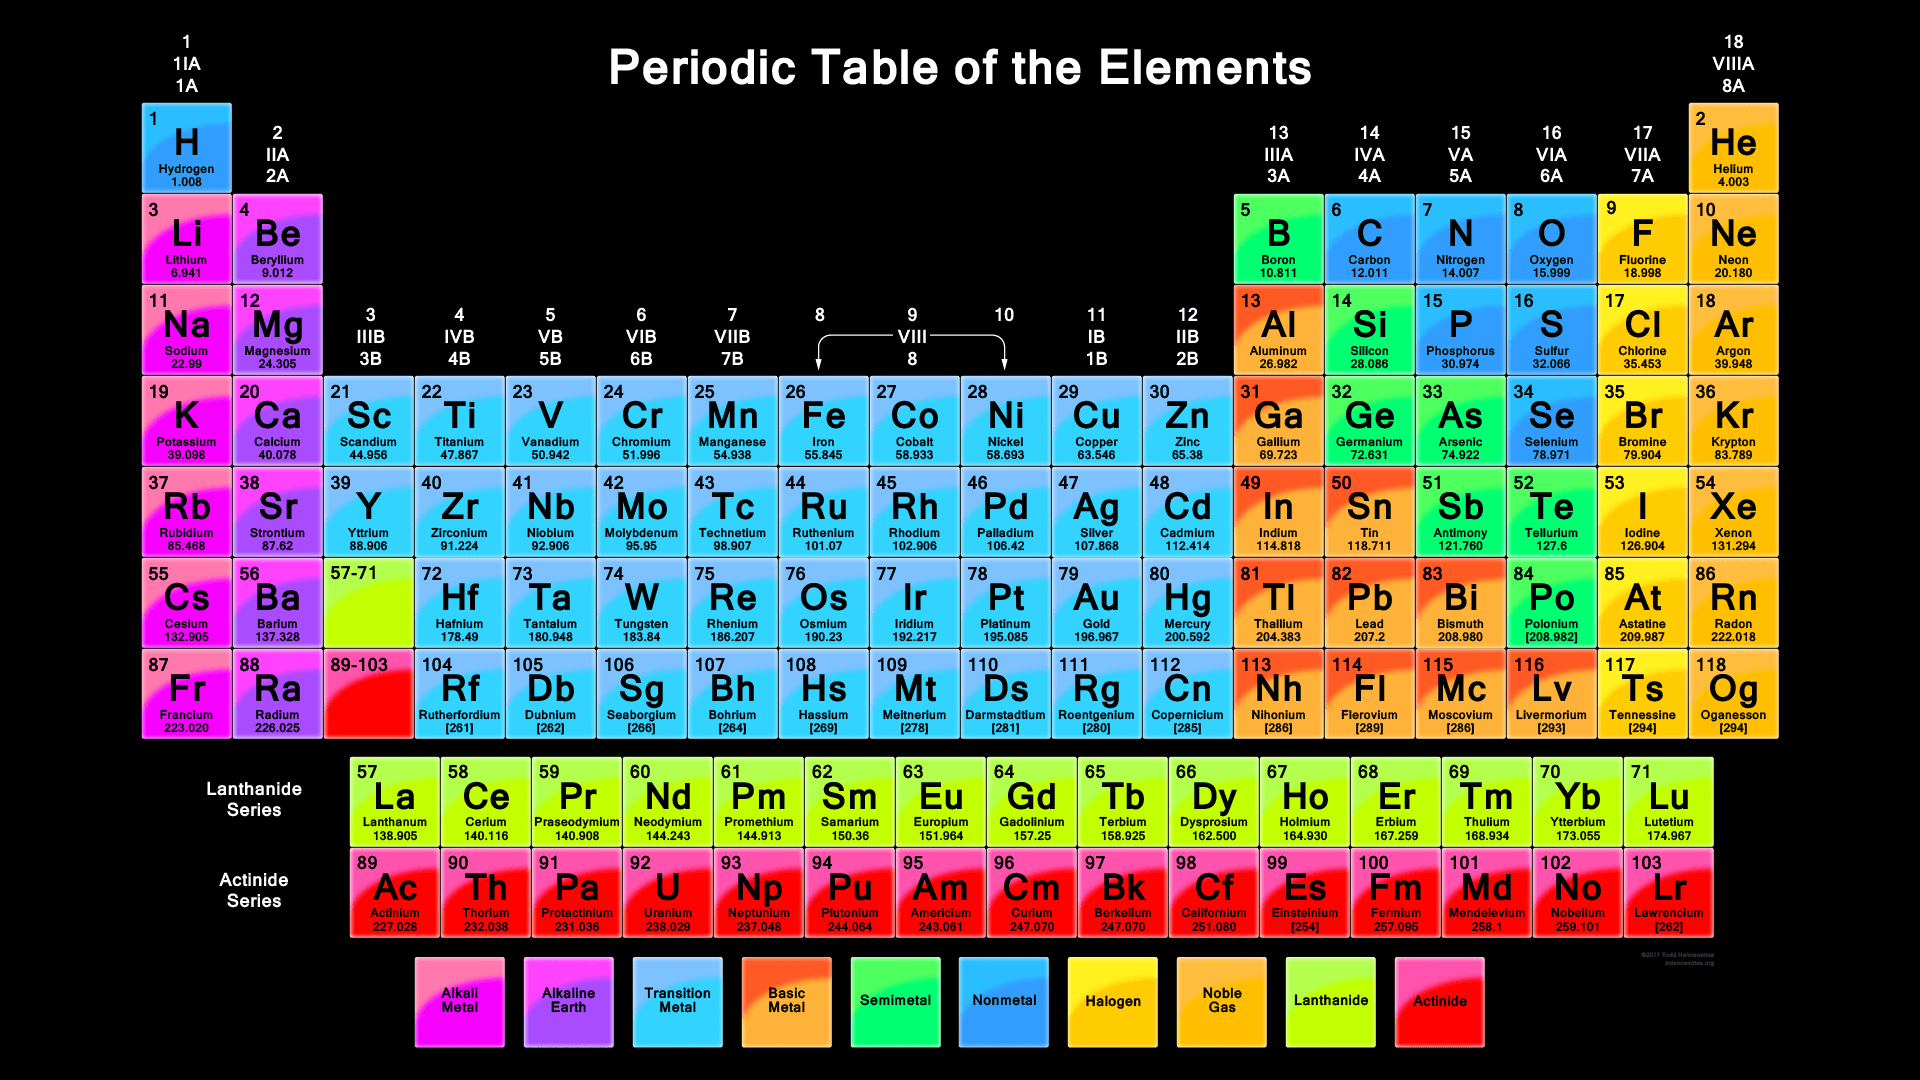 Periodic table pdf 2017 edition with 118 elements table on whitetable on black gamestrikefo Gallery